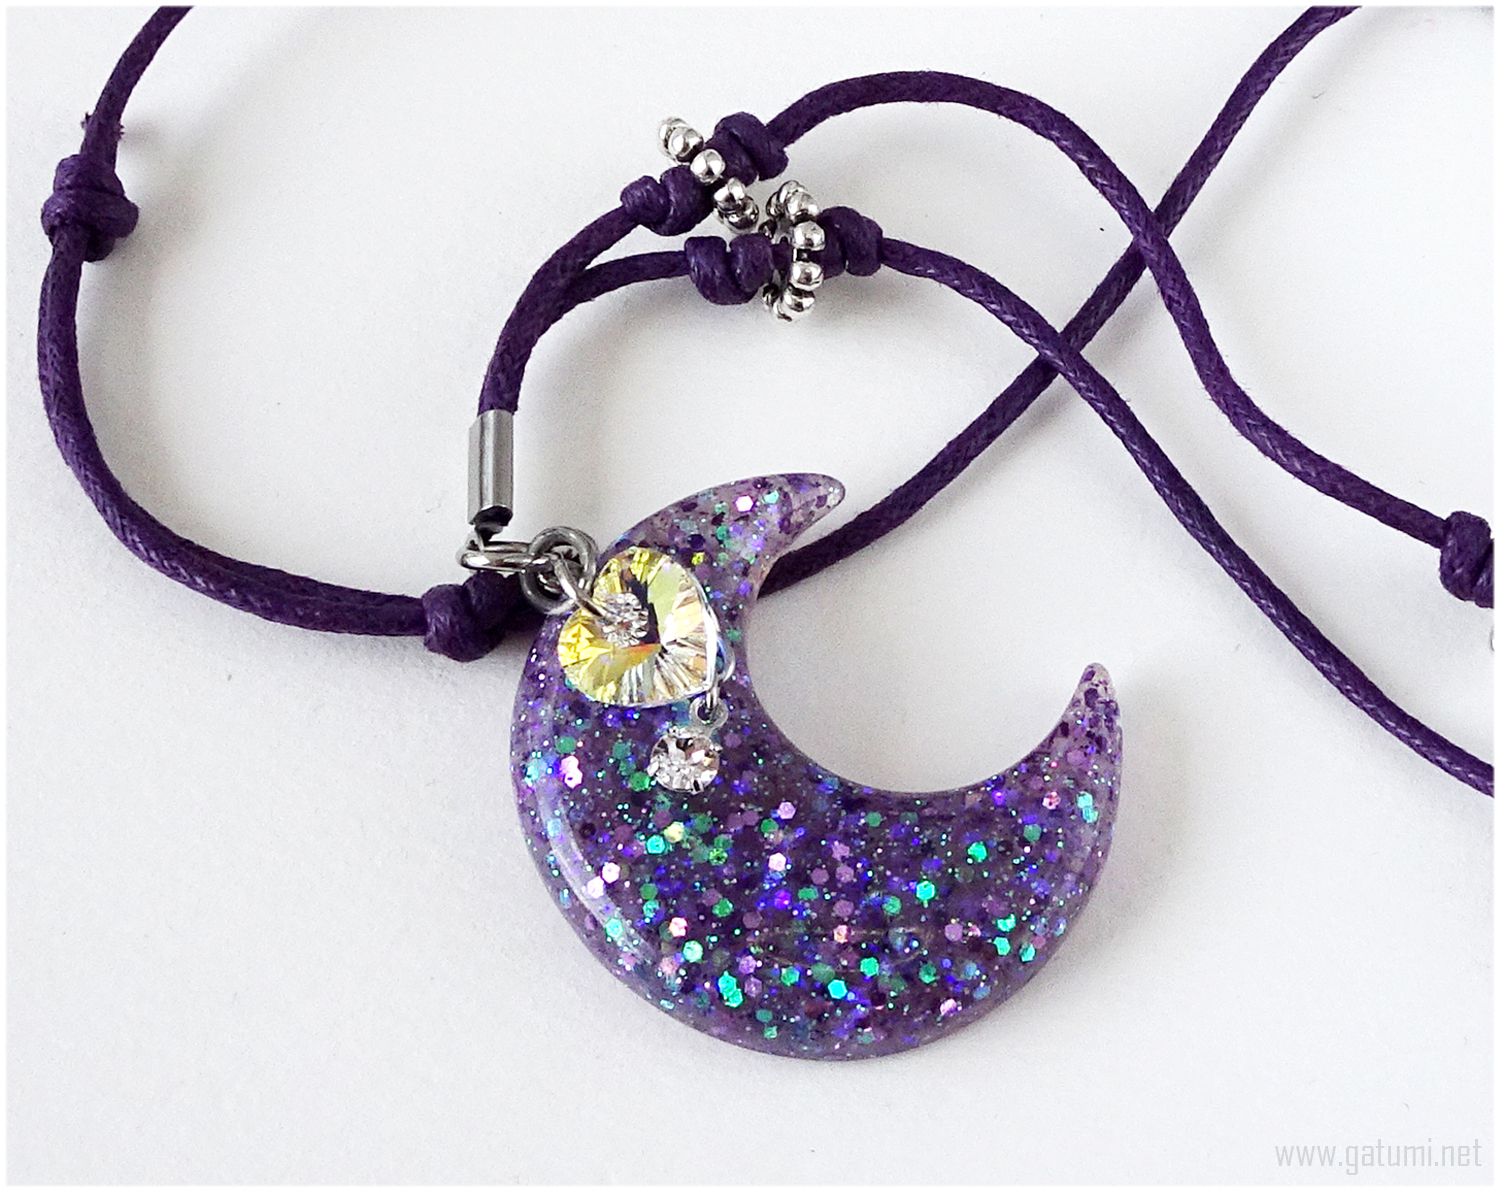 Primary image for Glitter Moon Necklace with Swarovski Crystals, Purple, Pastel Goth